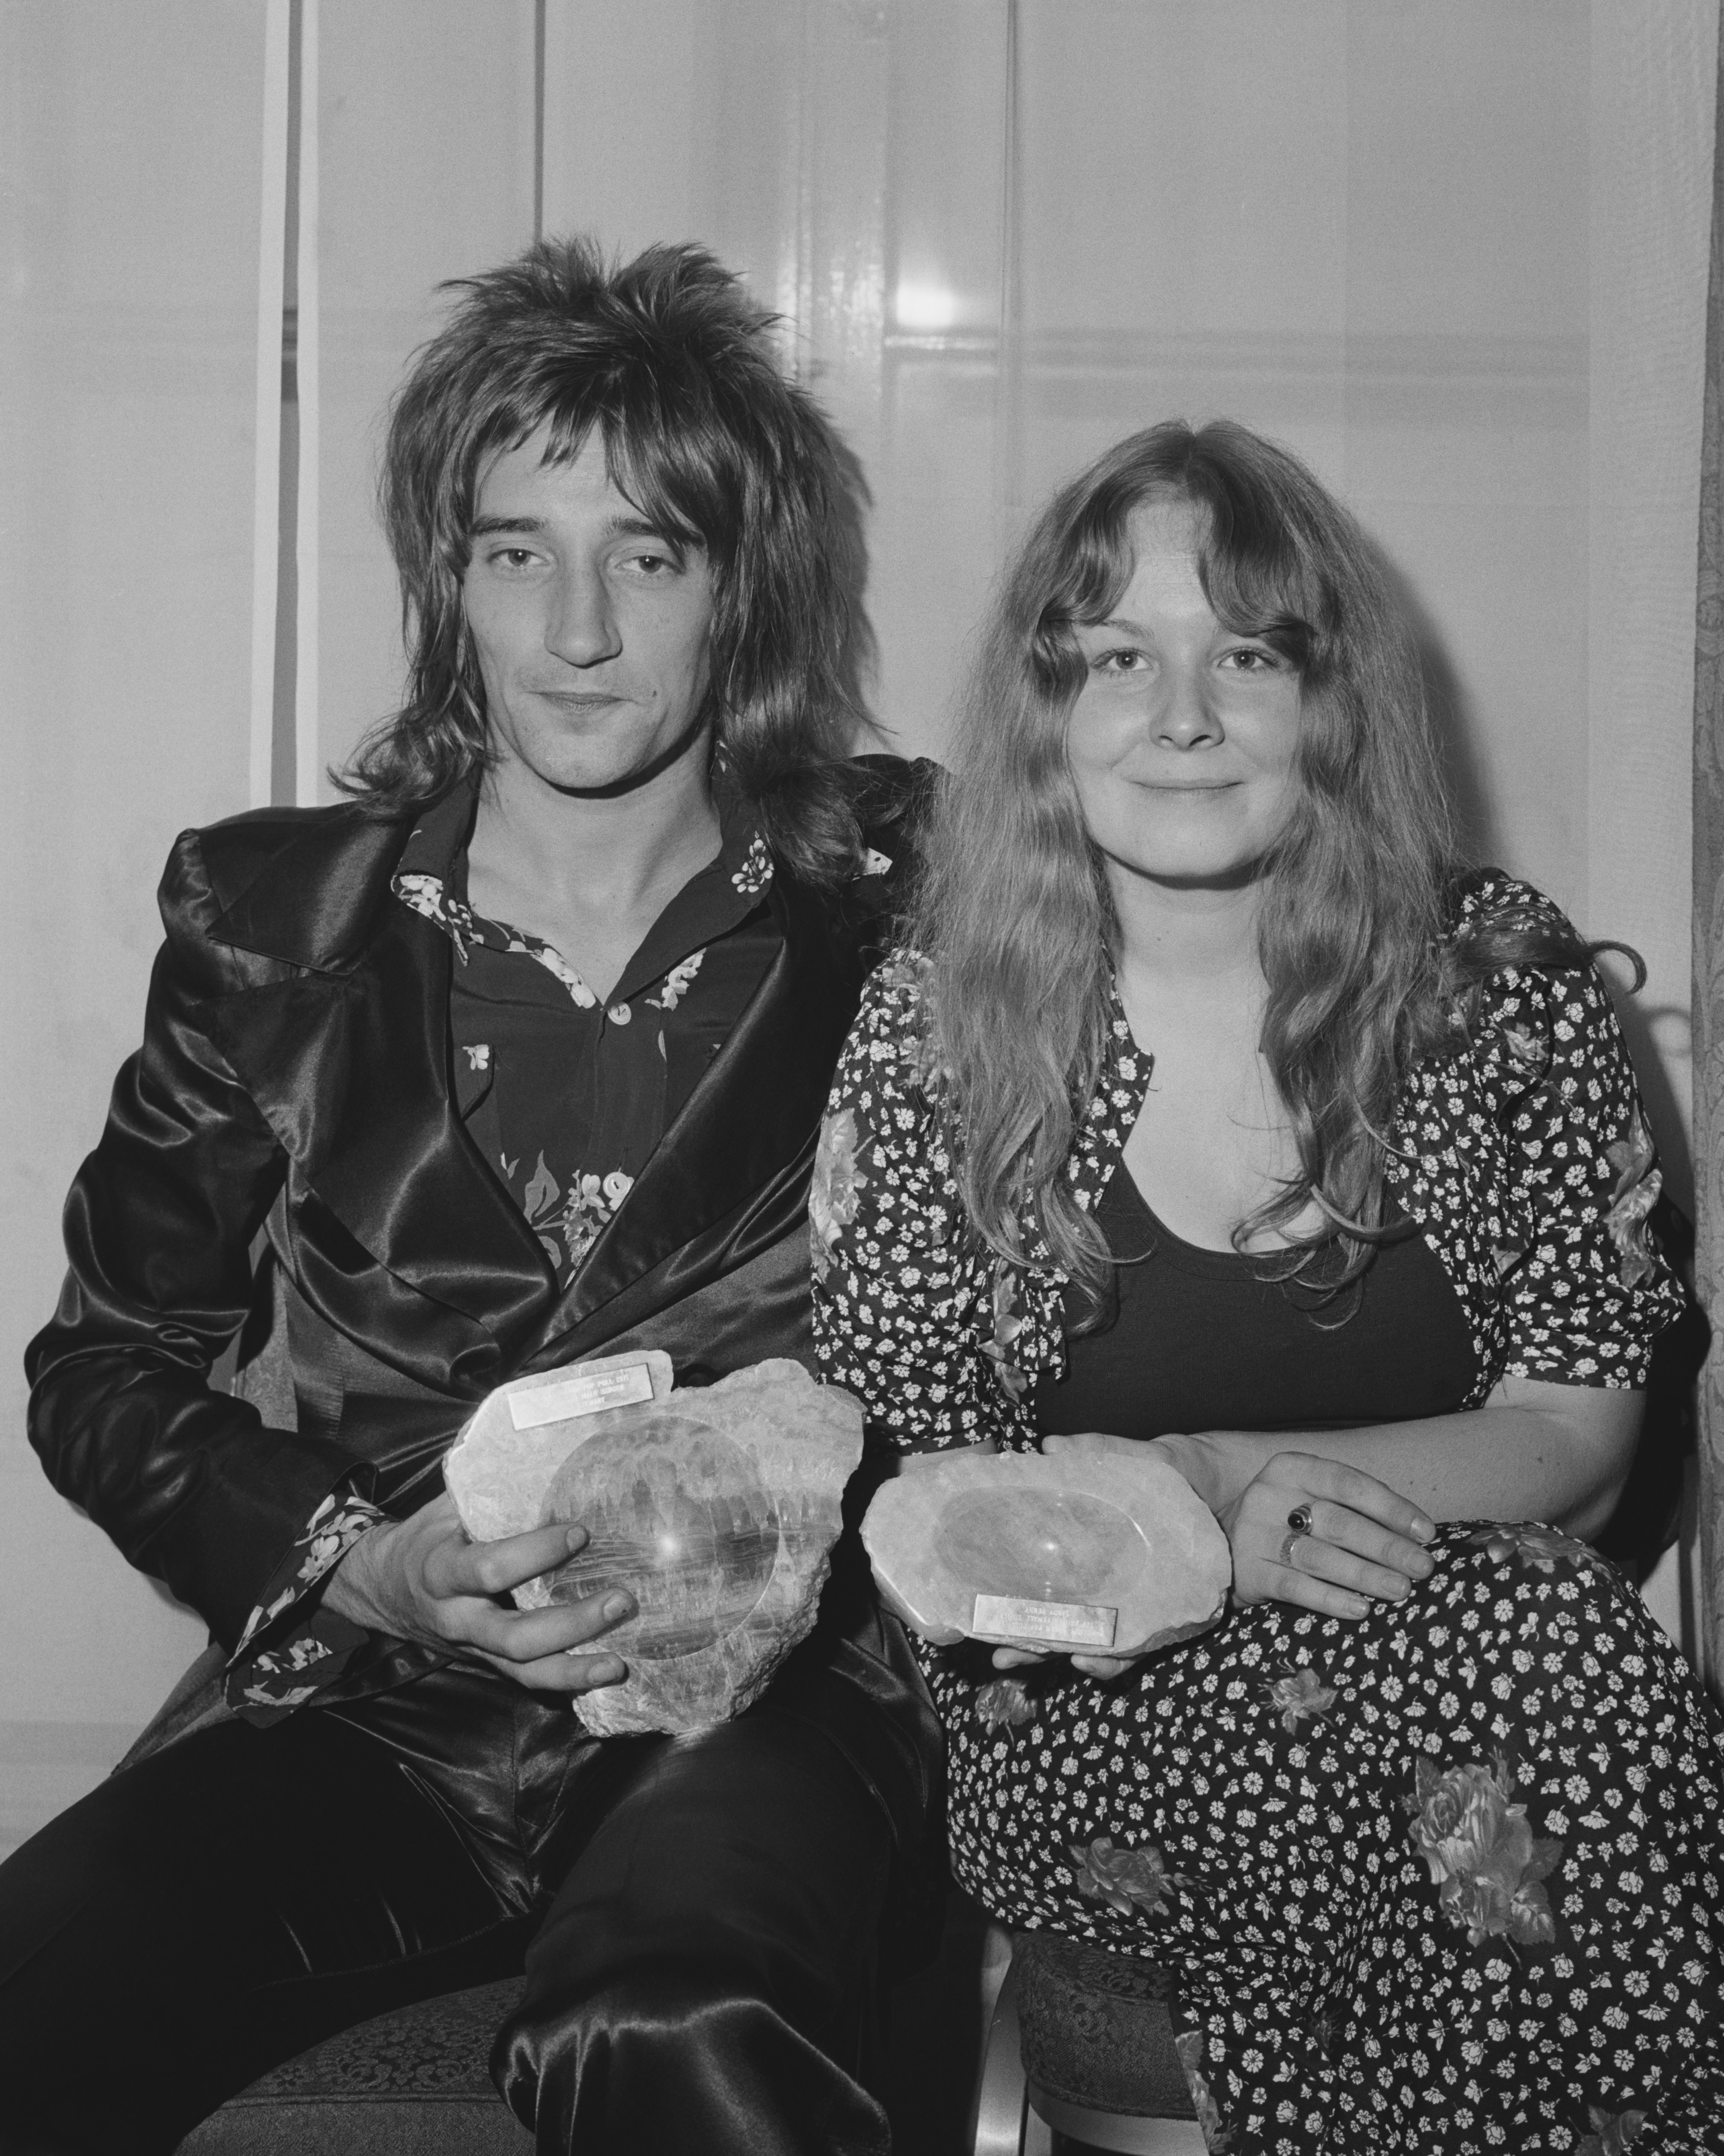 British singers Rod Stewart and Sandy Denny (1947 - 1978) with their Melody Maker Pop Poll awards for Top Male and Top Female Singer, after the awards ceremony in London, 15th September 1971. (Photo by Central Press/Hulton Archive/Getty Images)